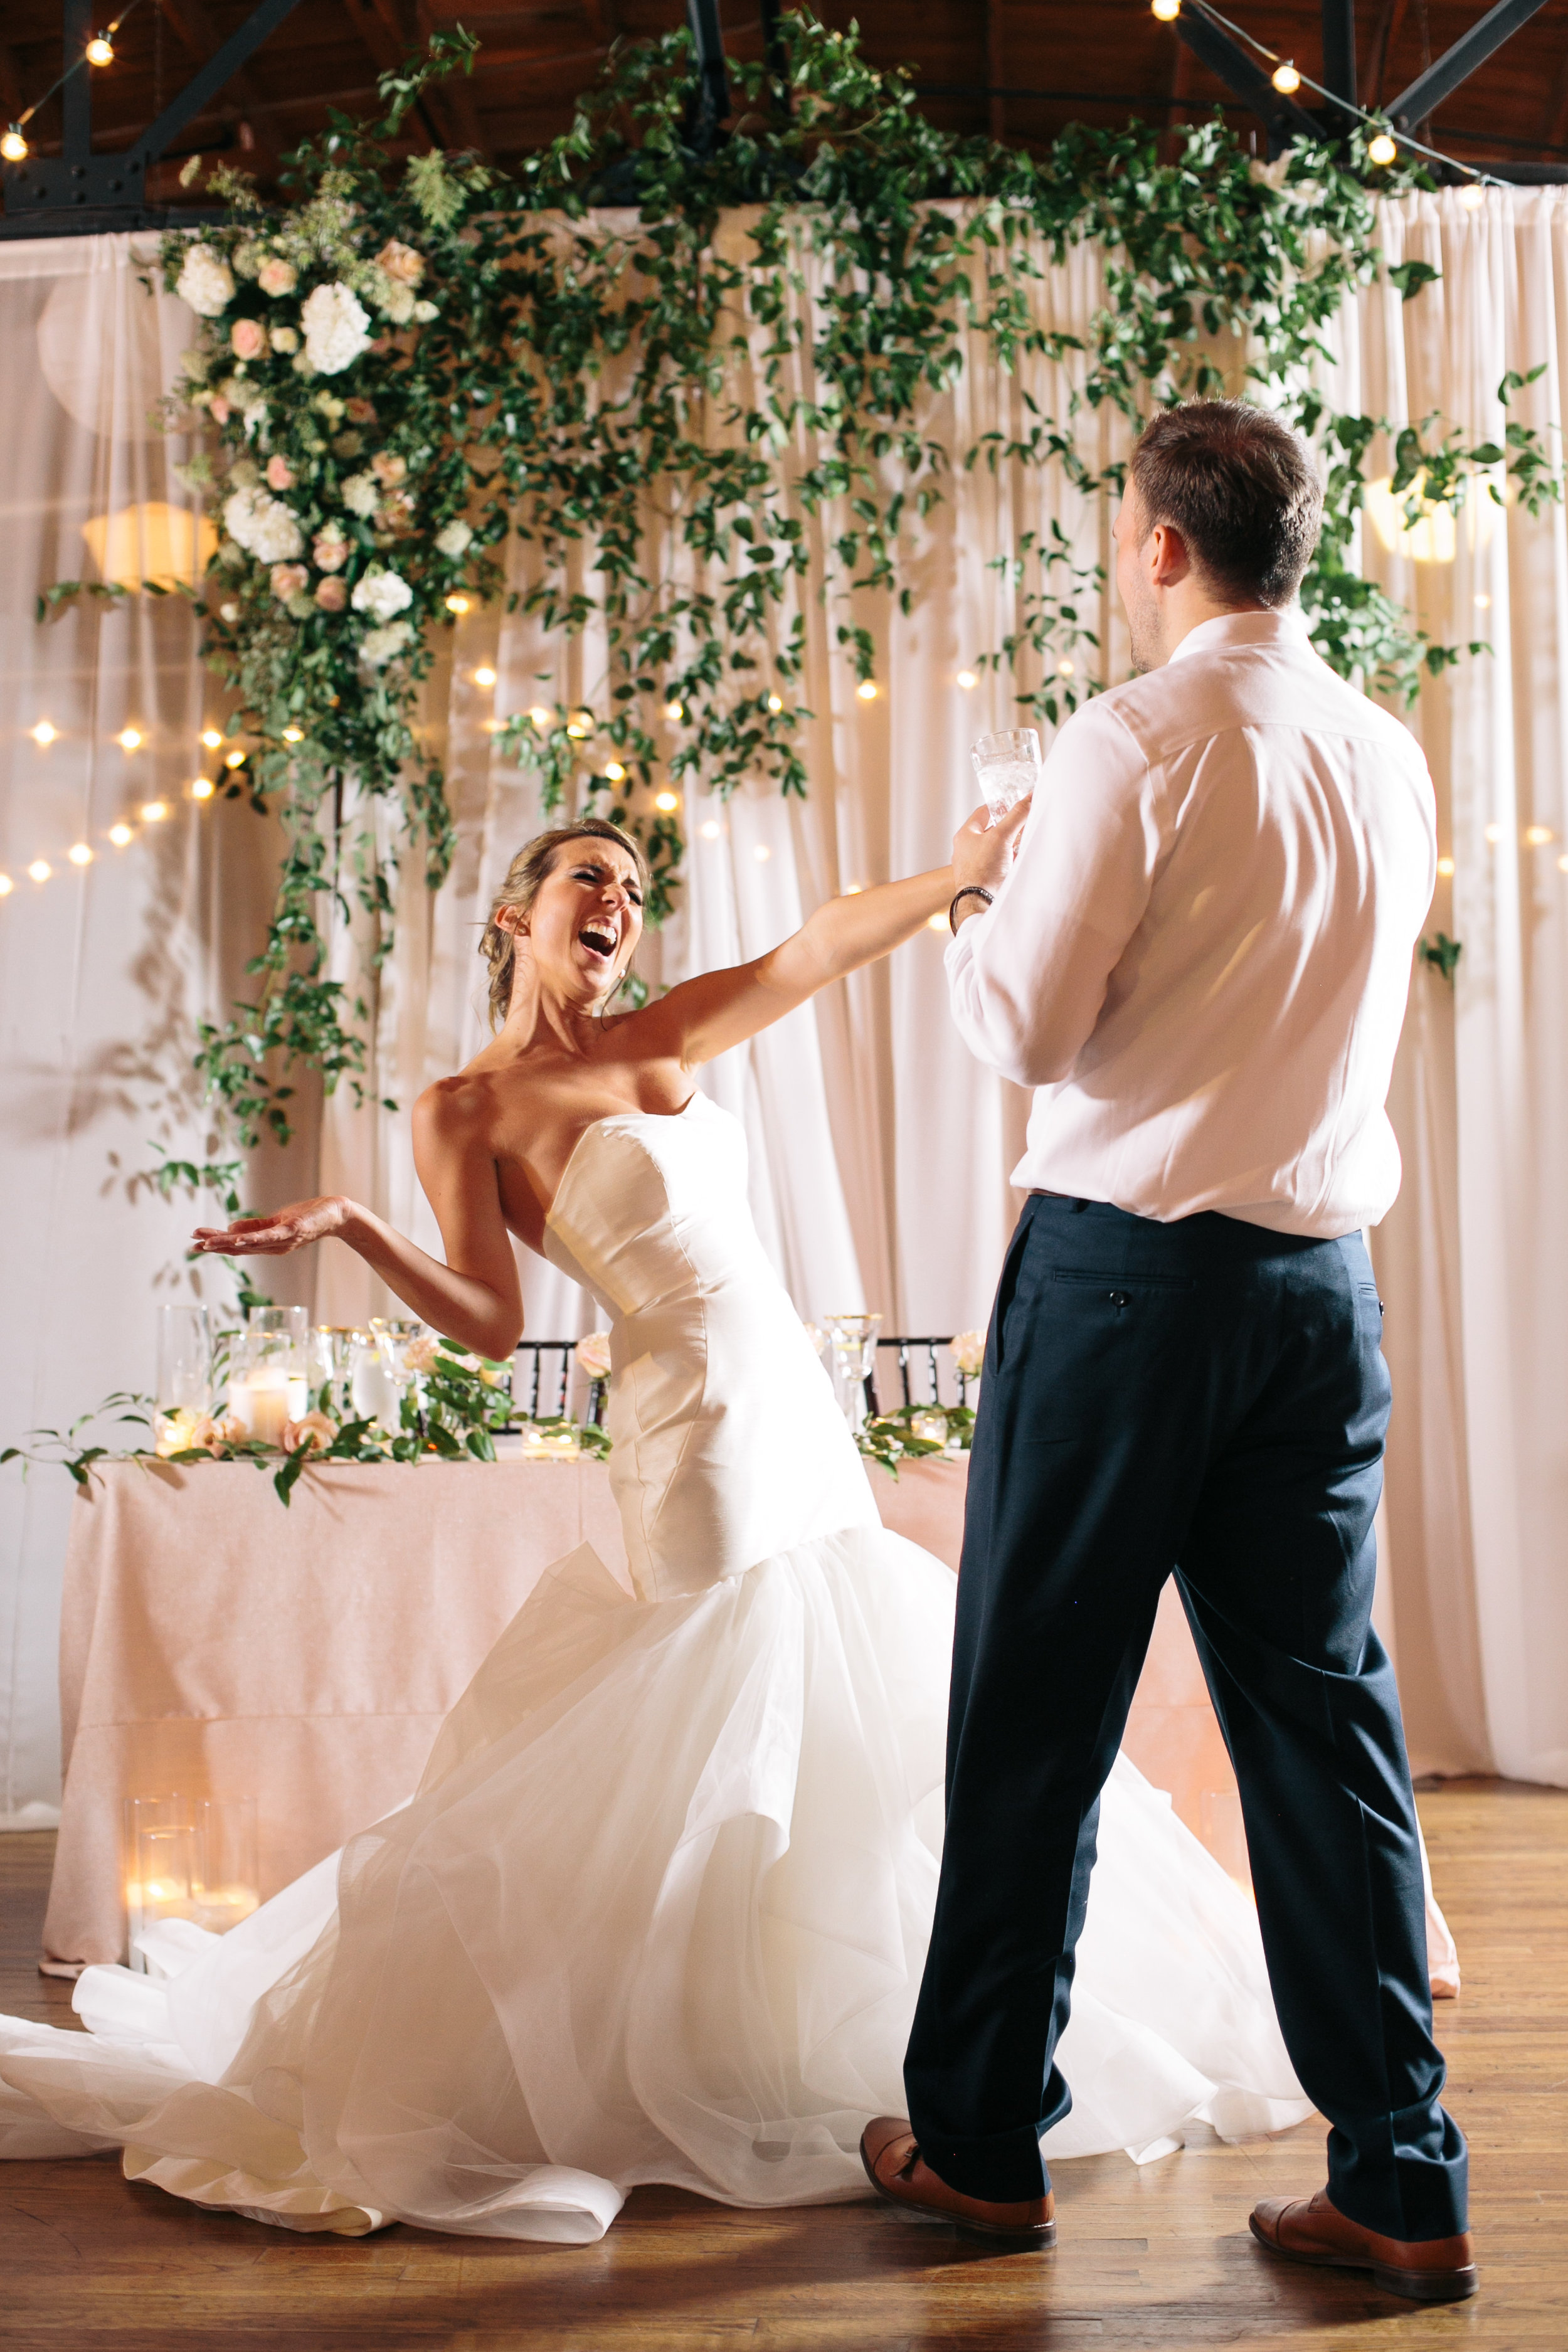 How to Plan A Wedding Reception that Doesn't Suck - Photo by Aaron SnowBy Chasen ShawChasen is a certified Wedding Entertainment Director and owner of PartyBox. He and his wife Leslee Layton are the founders of Let's Revel.